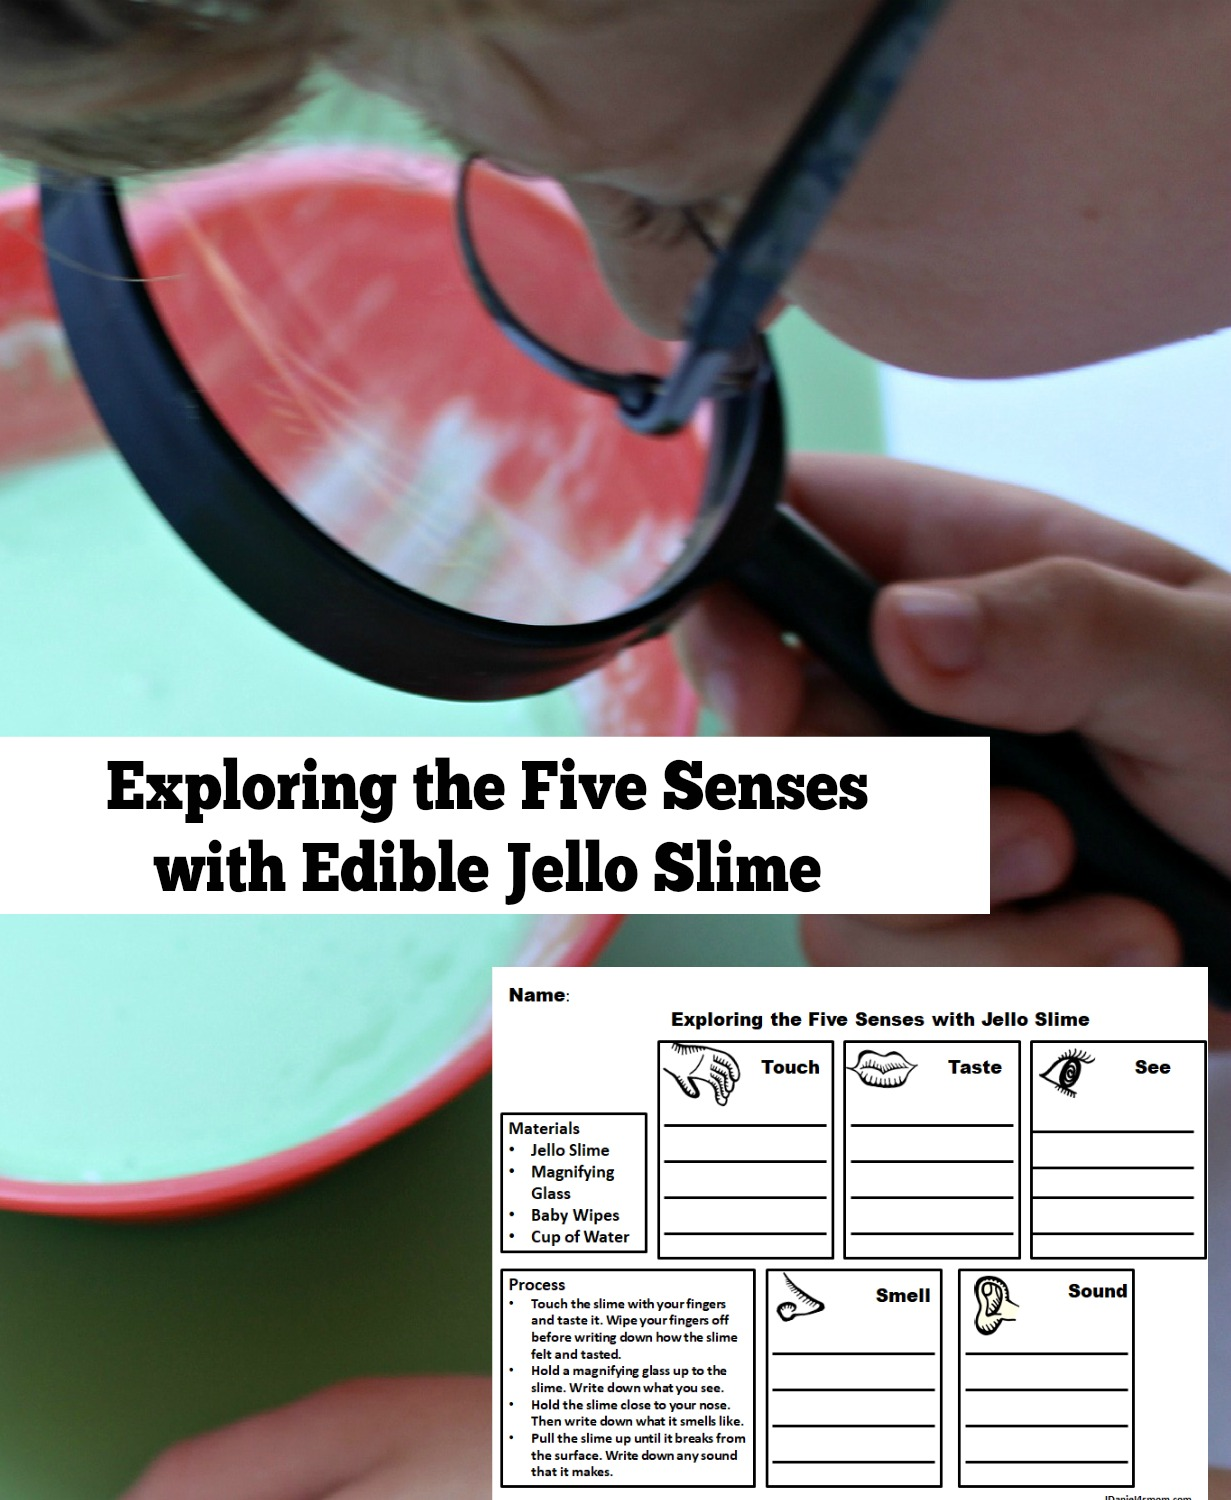 Exploring The Five Senses With Edible Jello Slime